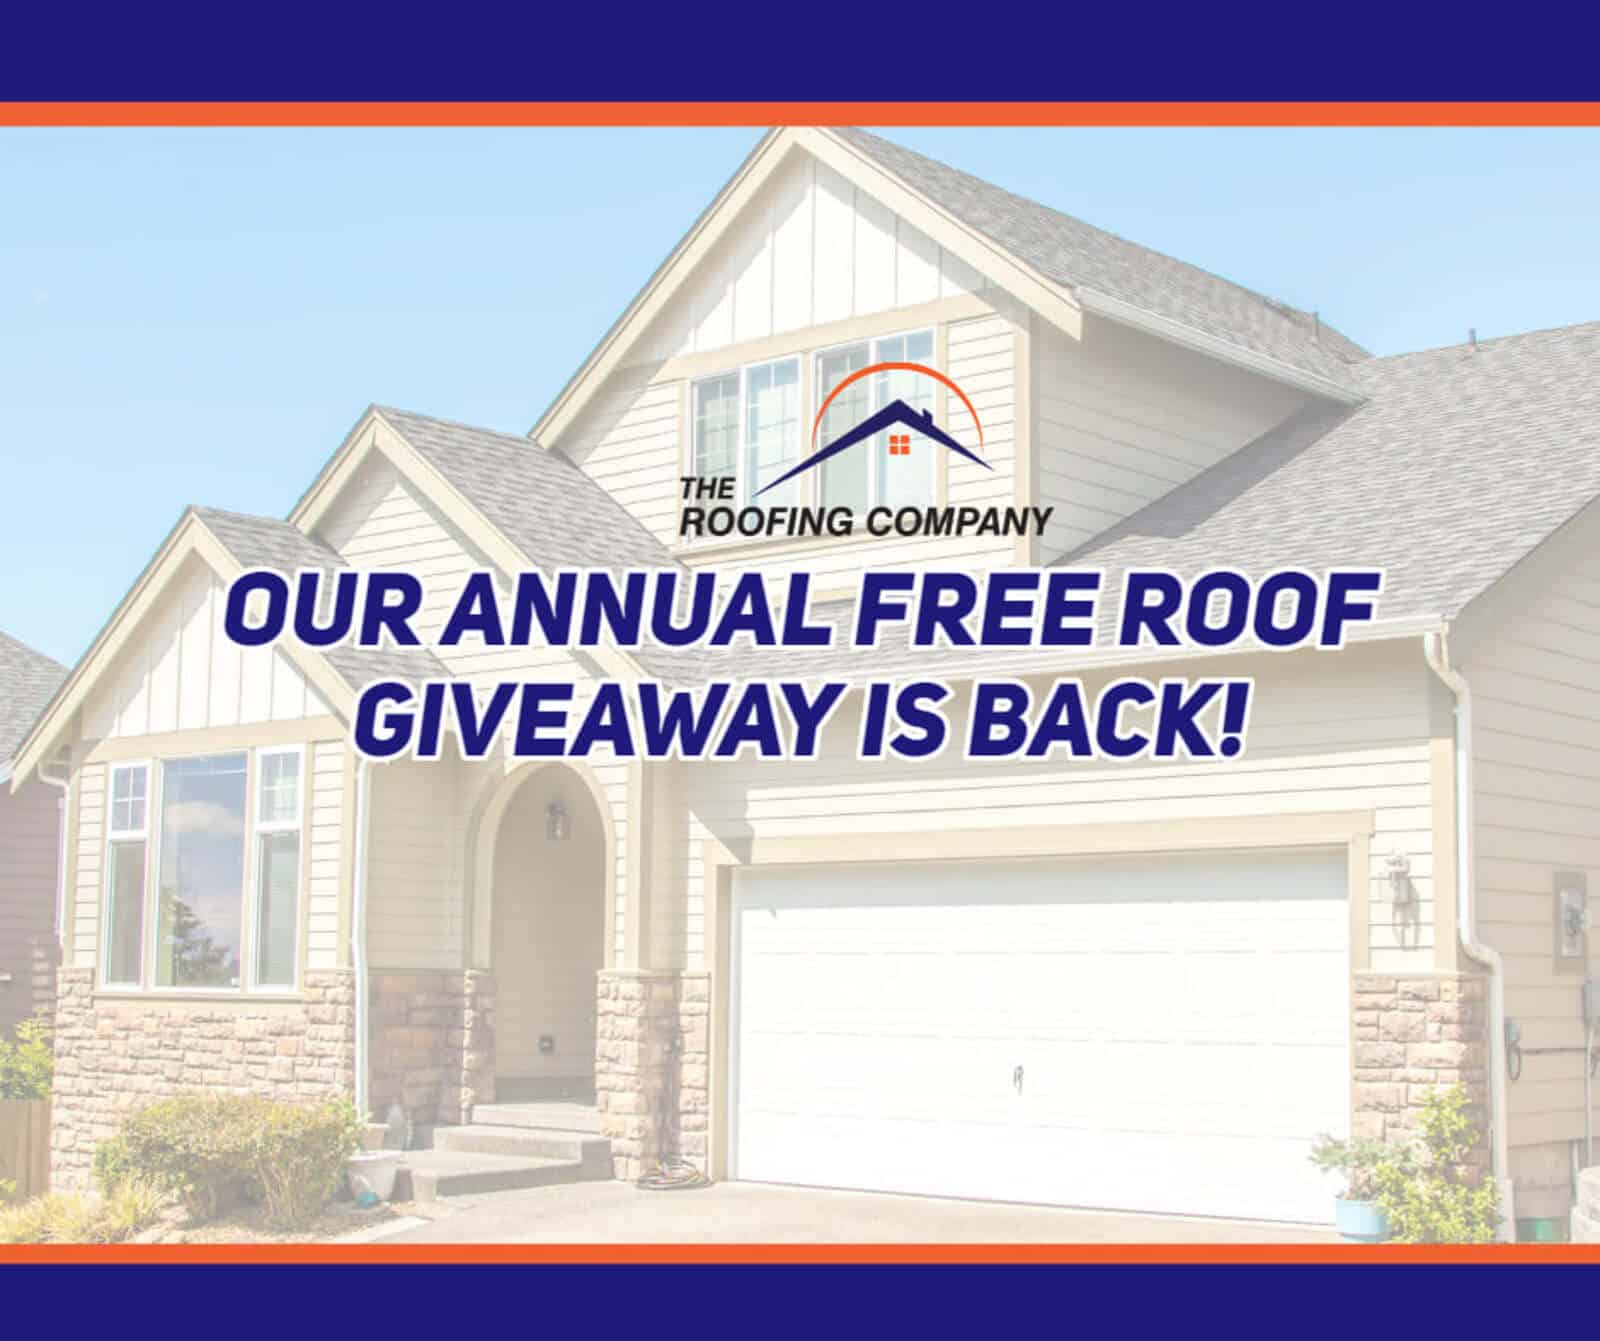 Free Roof Give away